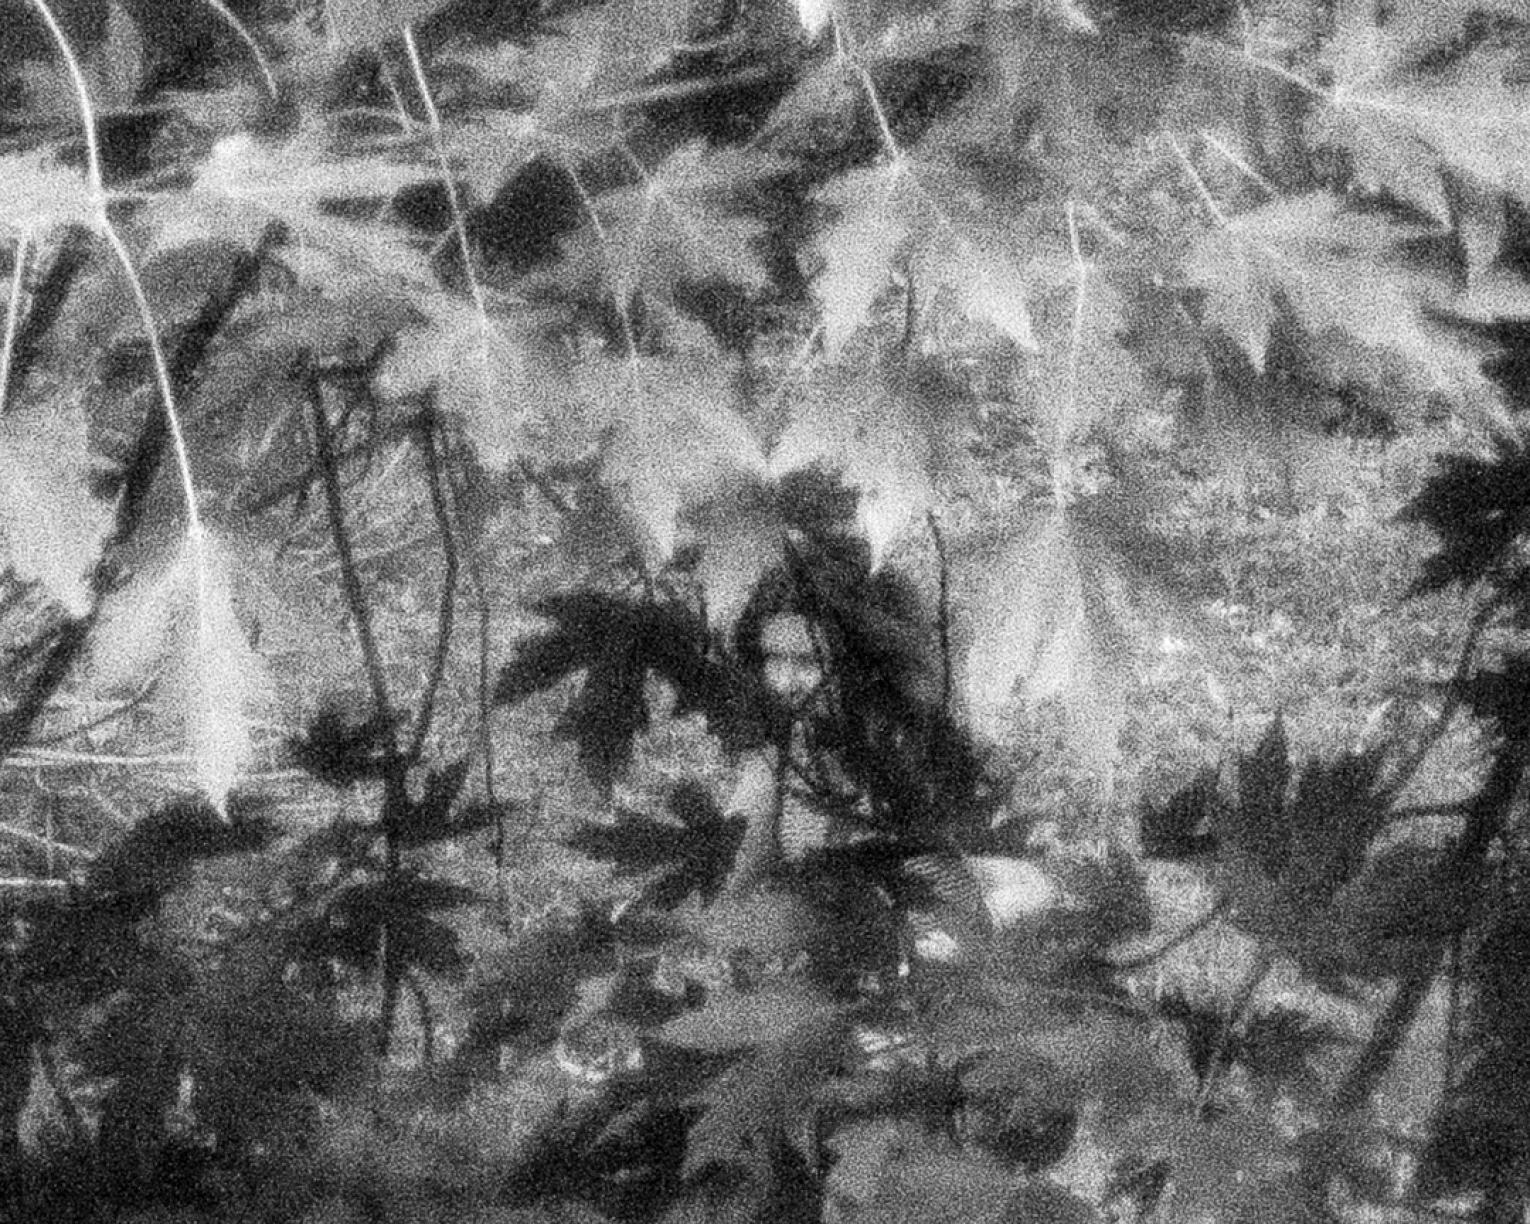 Black and white photo of a woman obscured by leaves